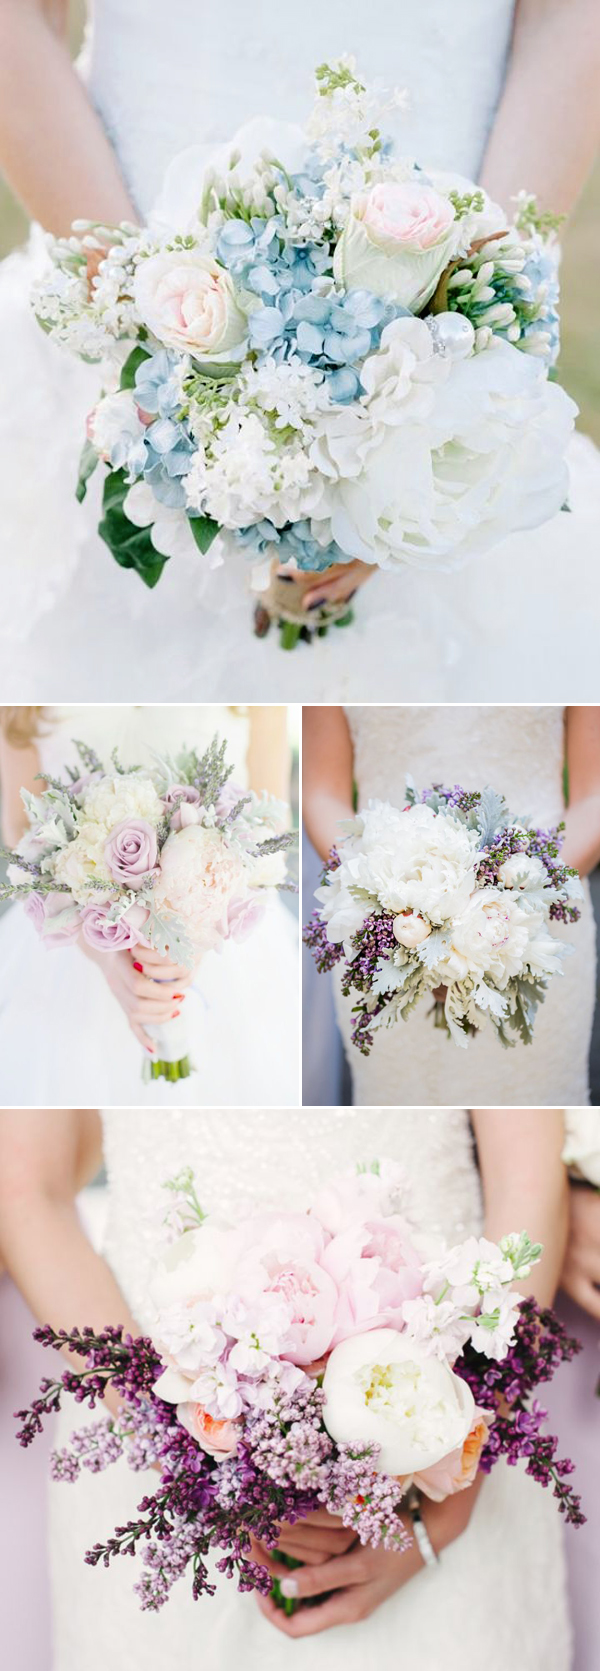 how to make a bouquet for a wedding prettiest wedding bouquet trends of 2015 praise wedding 4940